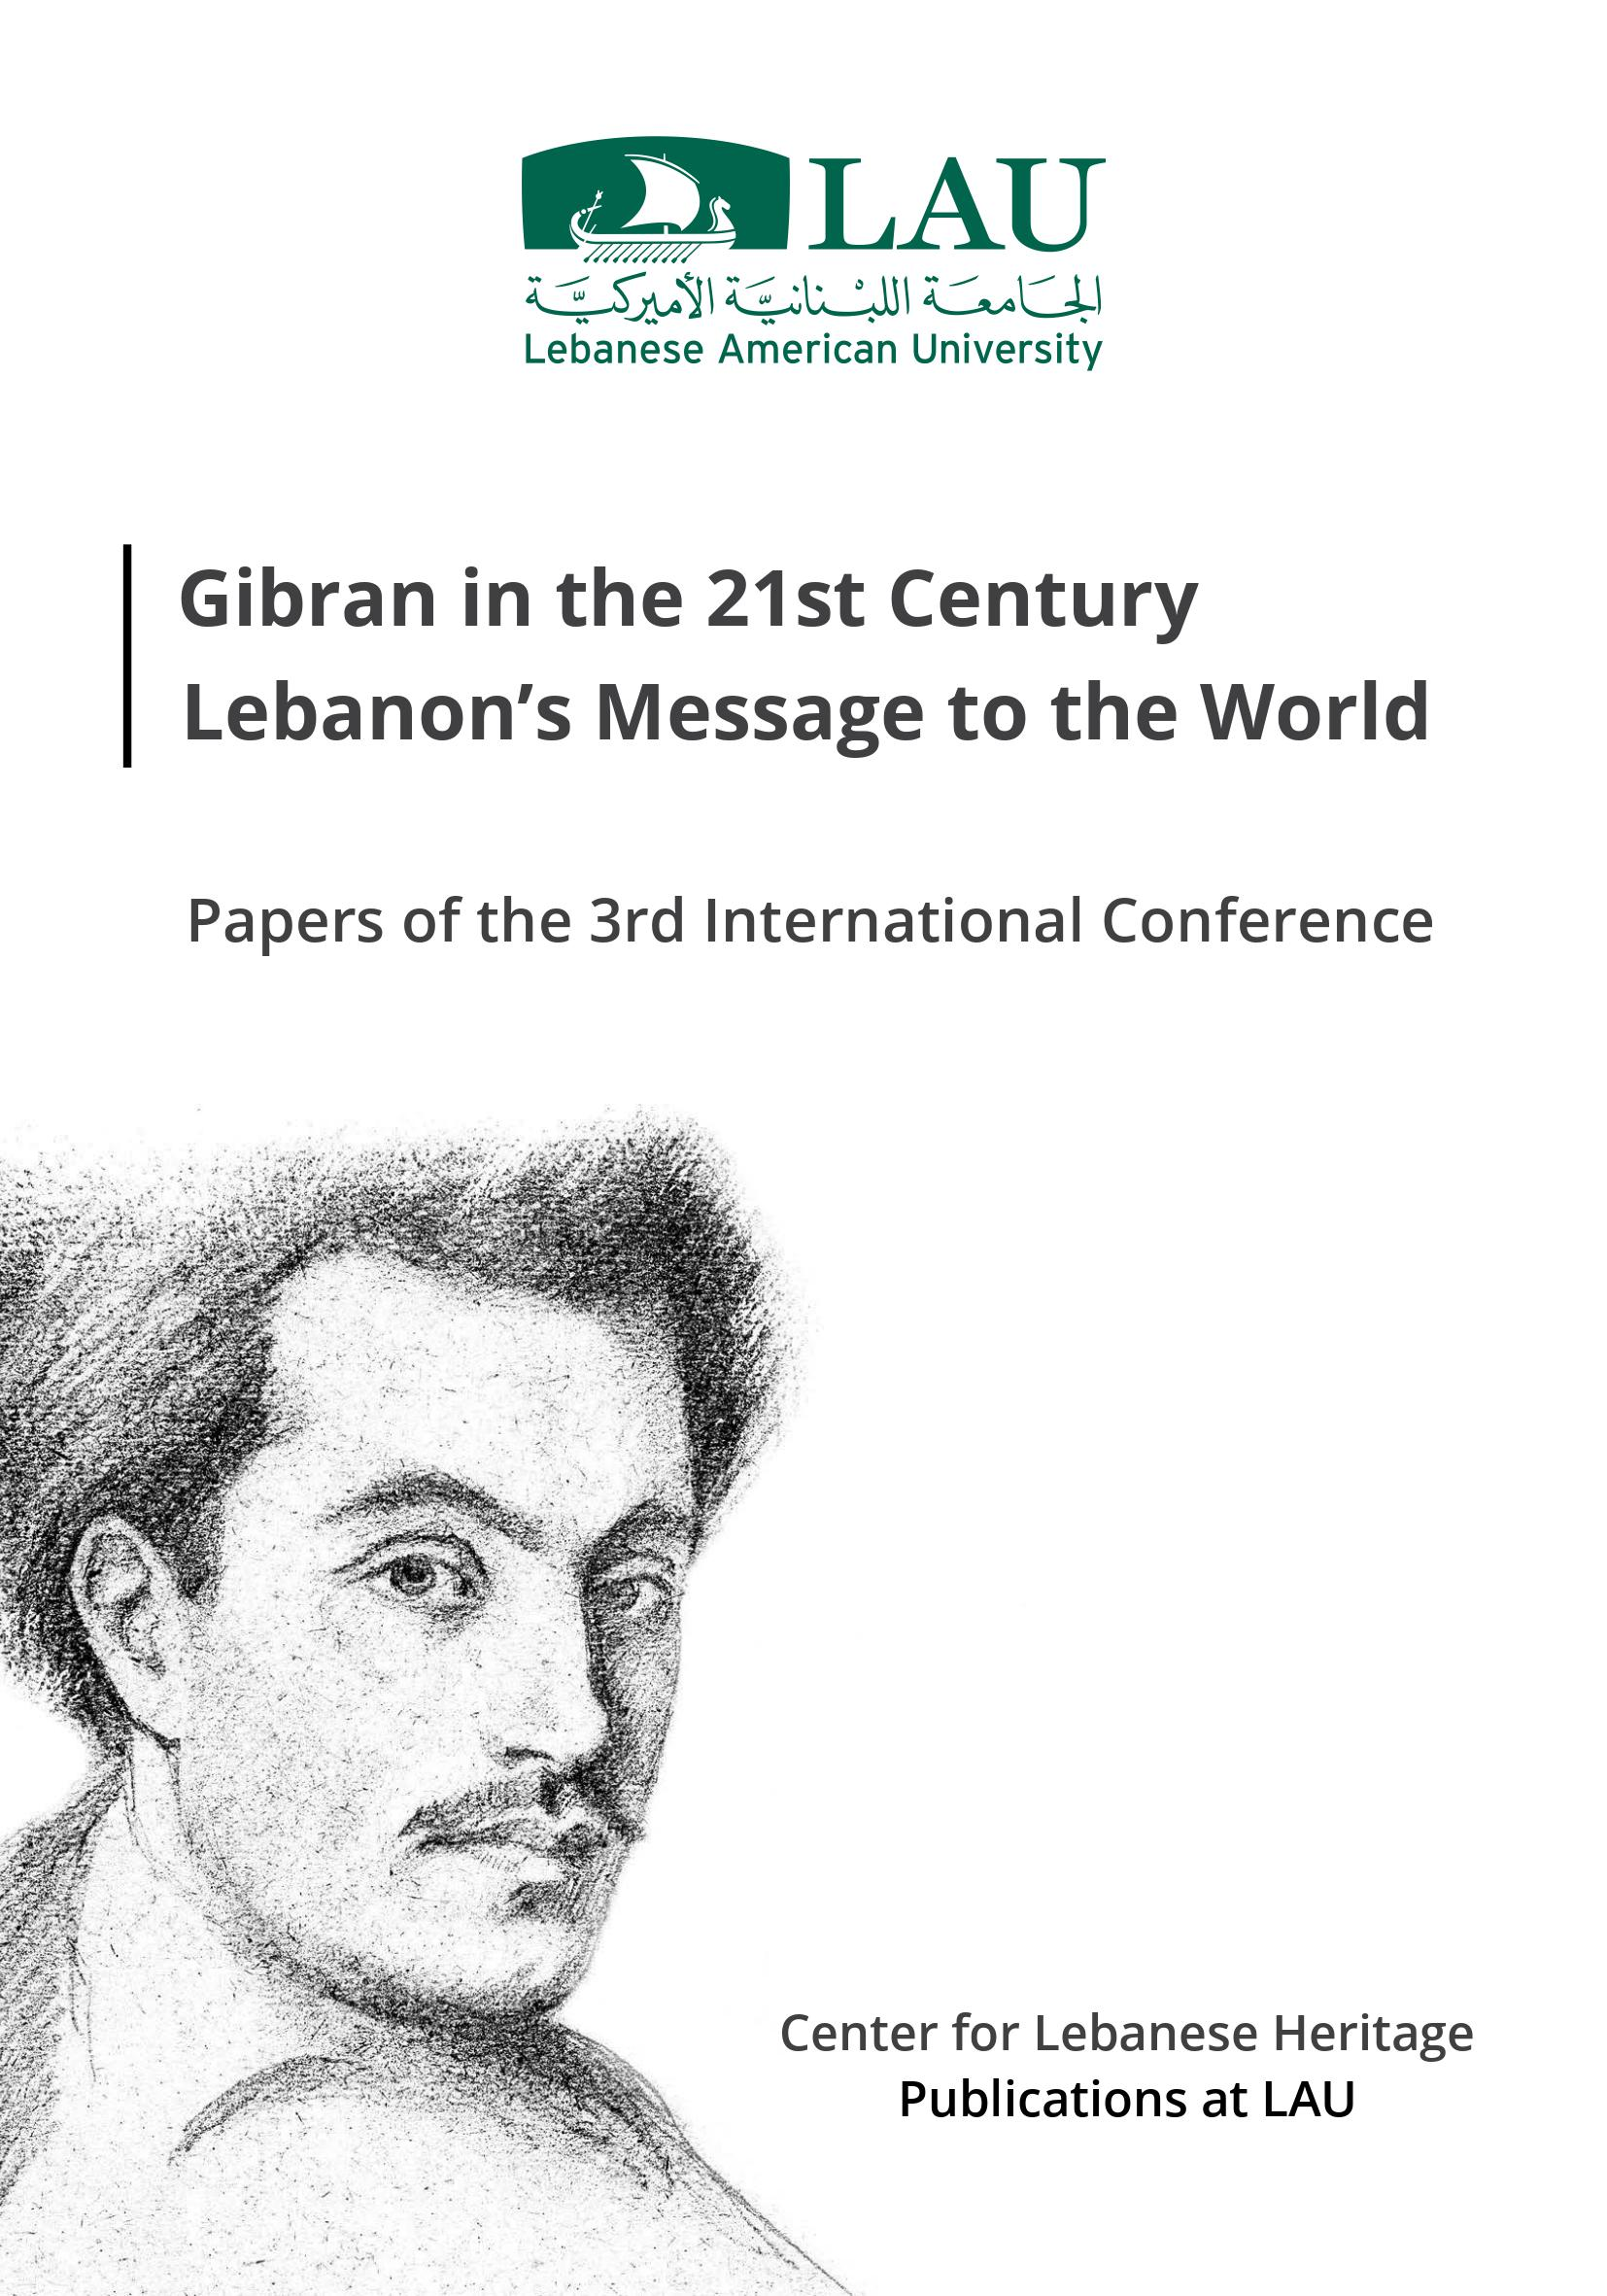 Gibran in the 21th Century: Lebanon's Message to the World [3rd Gibran International Conference Proceedings], edited by H. Zoghaib and M. Rihani, Beirut: Center for Lebanese Heritage, LAU, 2018.